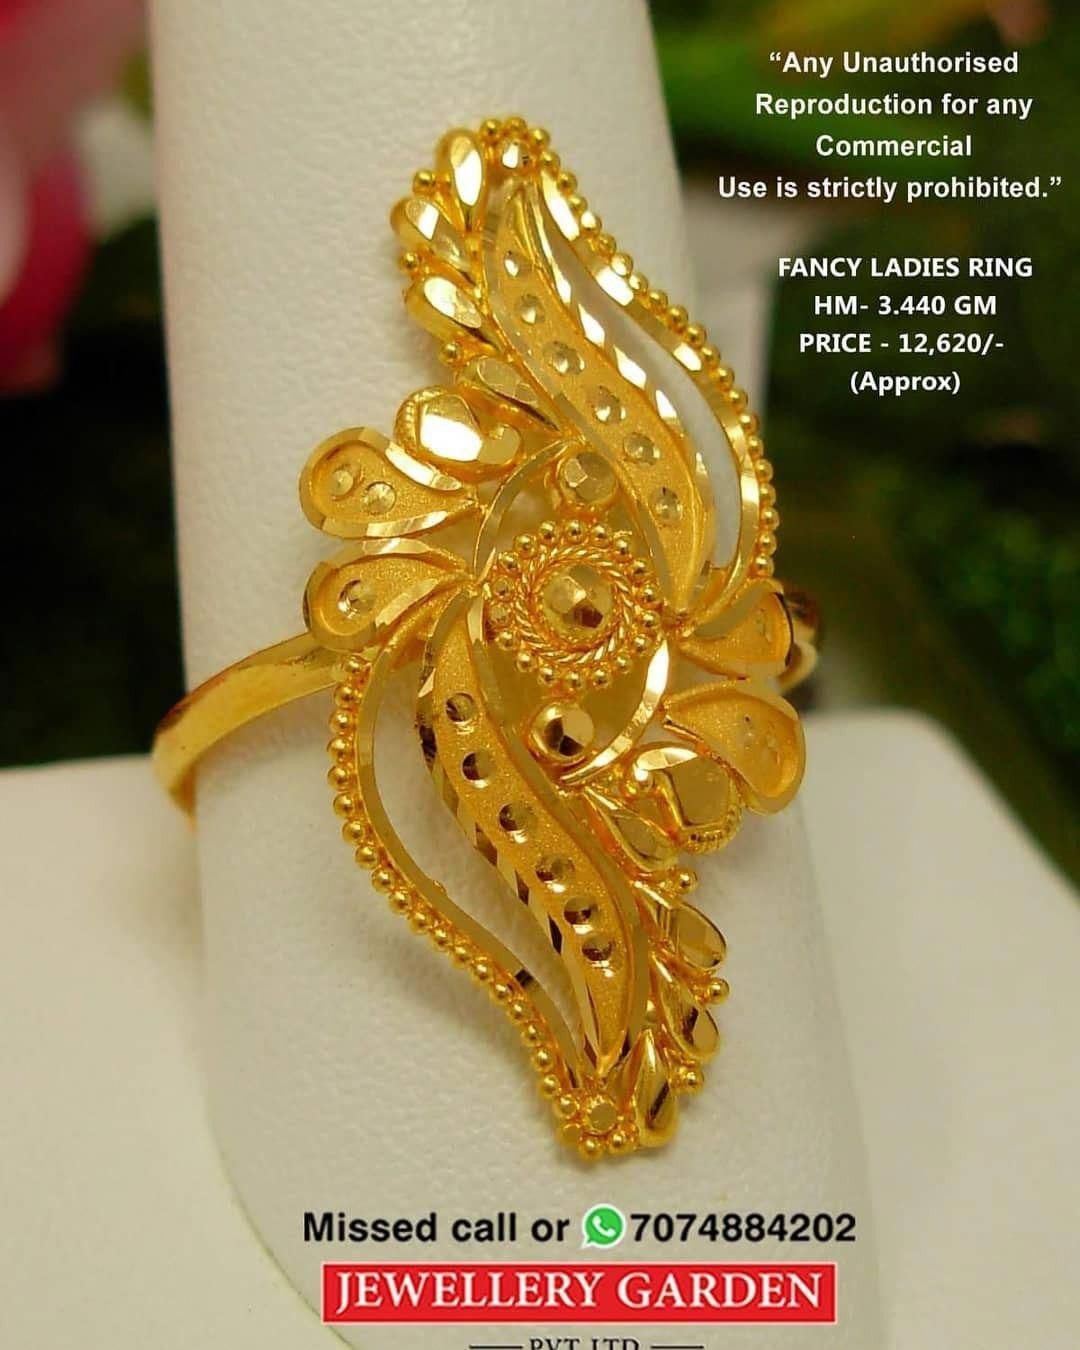 32+ Jewelry stores that buy used jewelry near me information